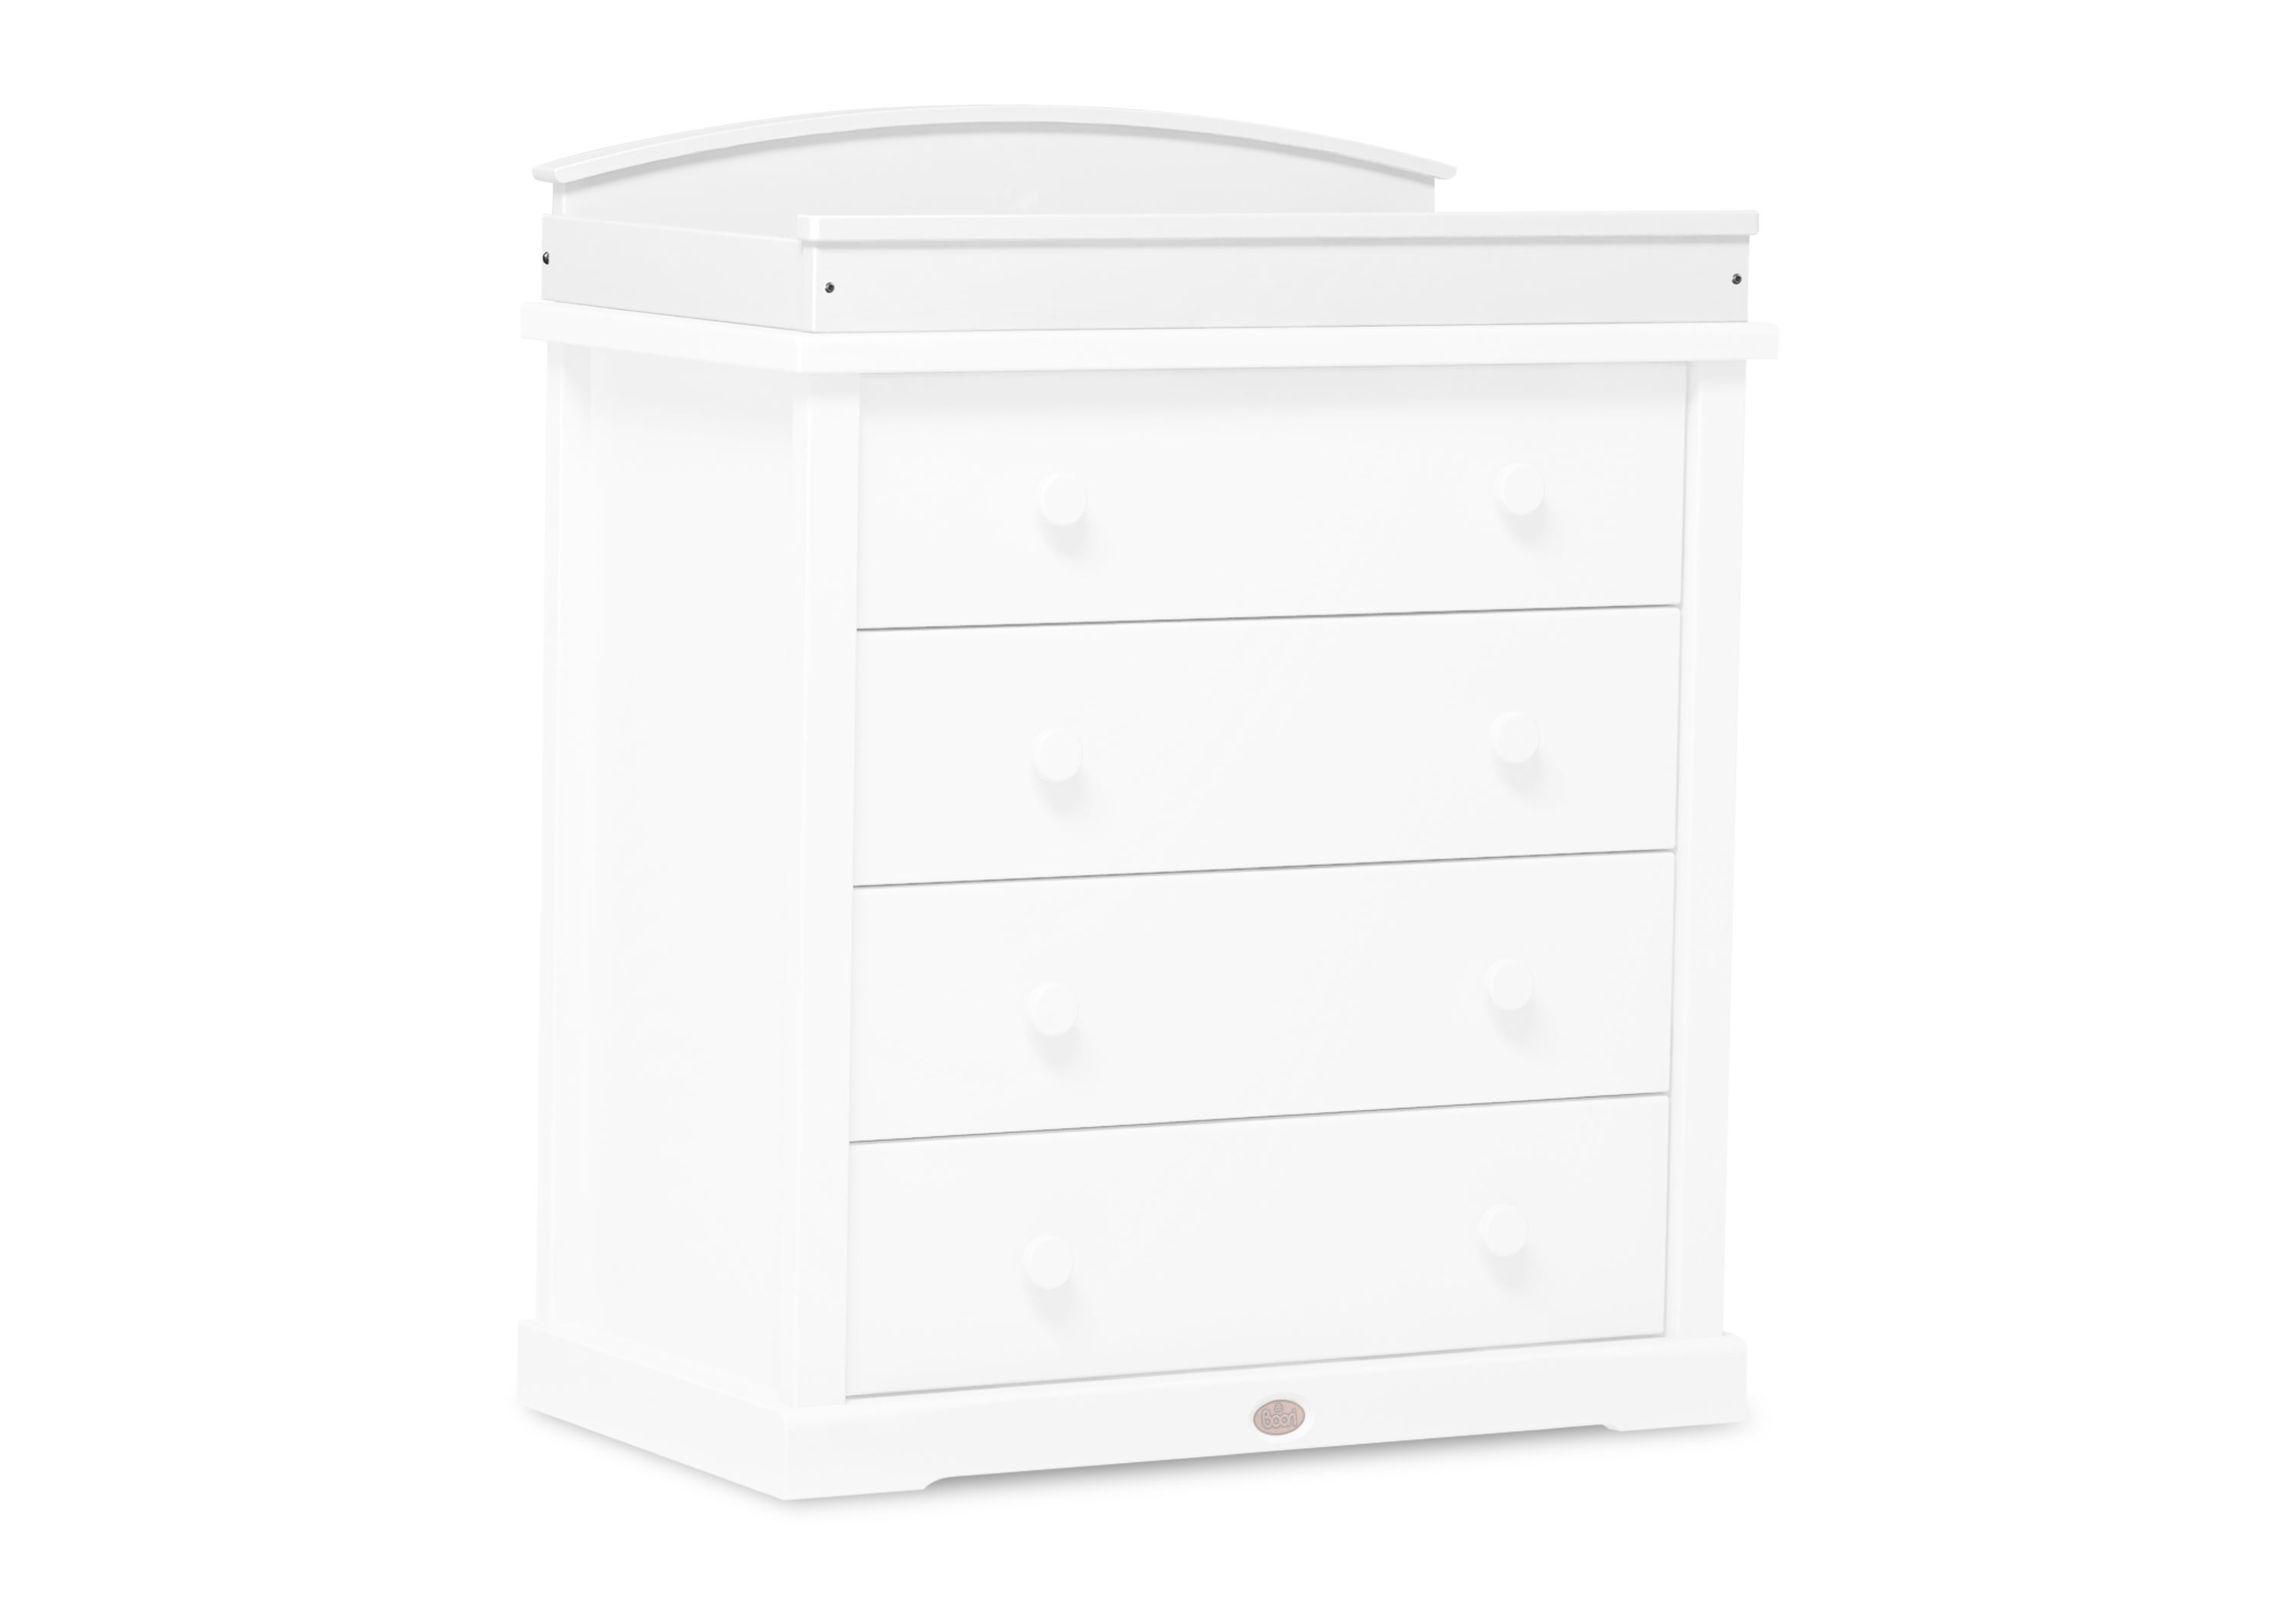 Arched Change tray (for 3 & 4 Drawer chests) - White